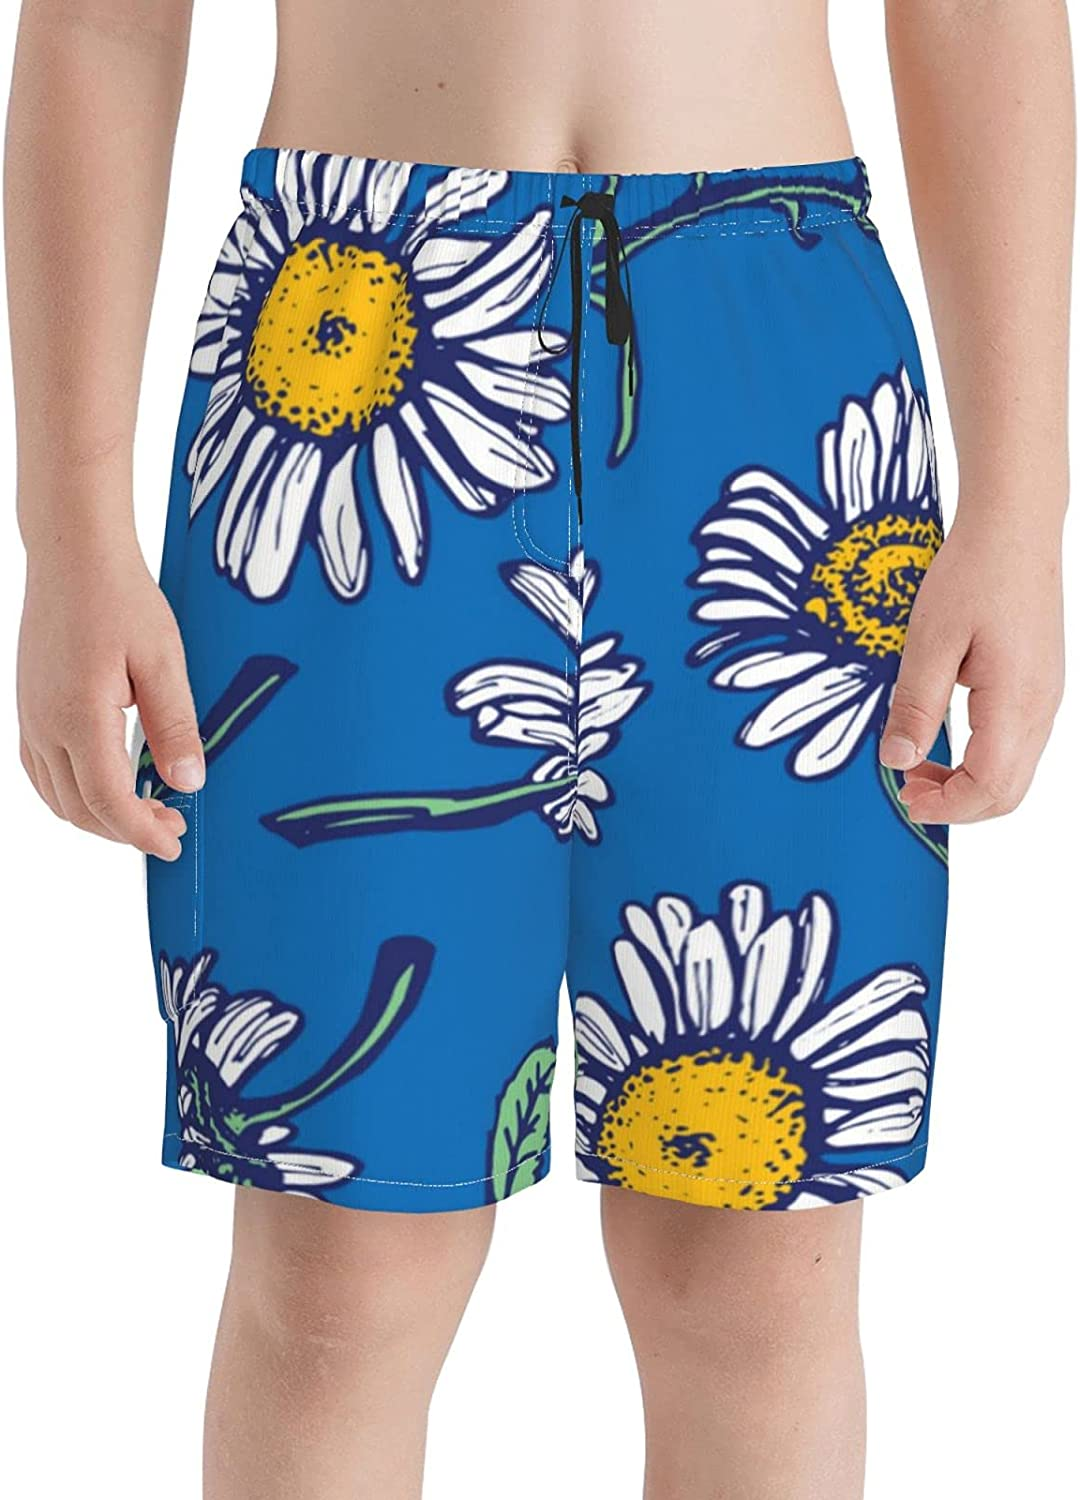 HJBJKBKSDA White Daisies Blue Background Boys Teens Swim Trunks Quick Dry Surfing Board Shorts with Mesh Lining